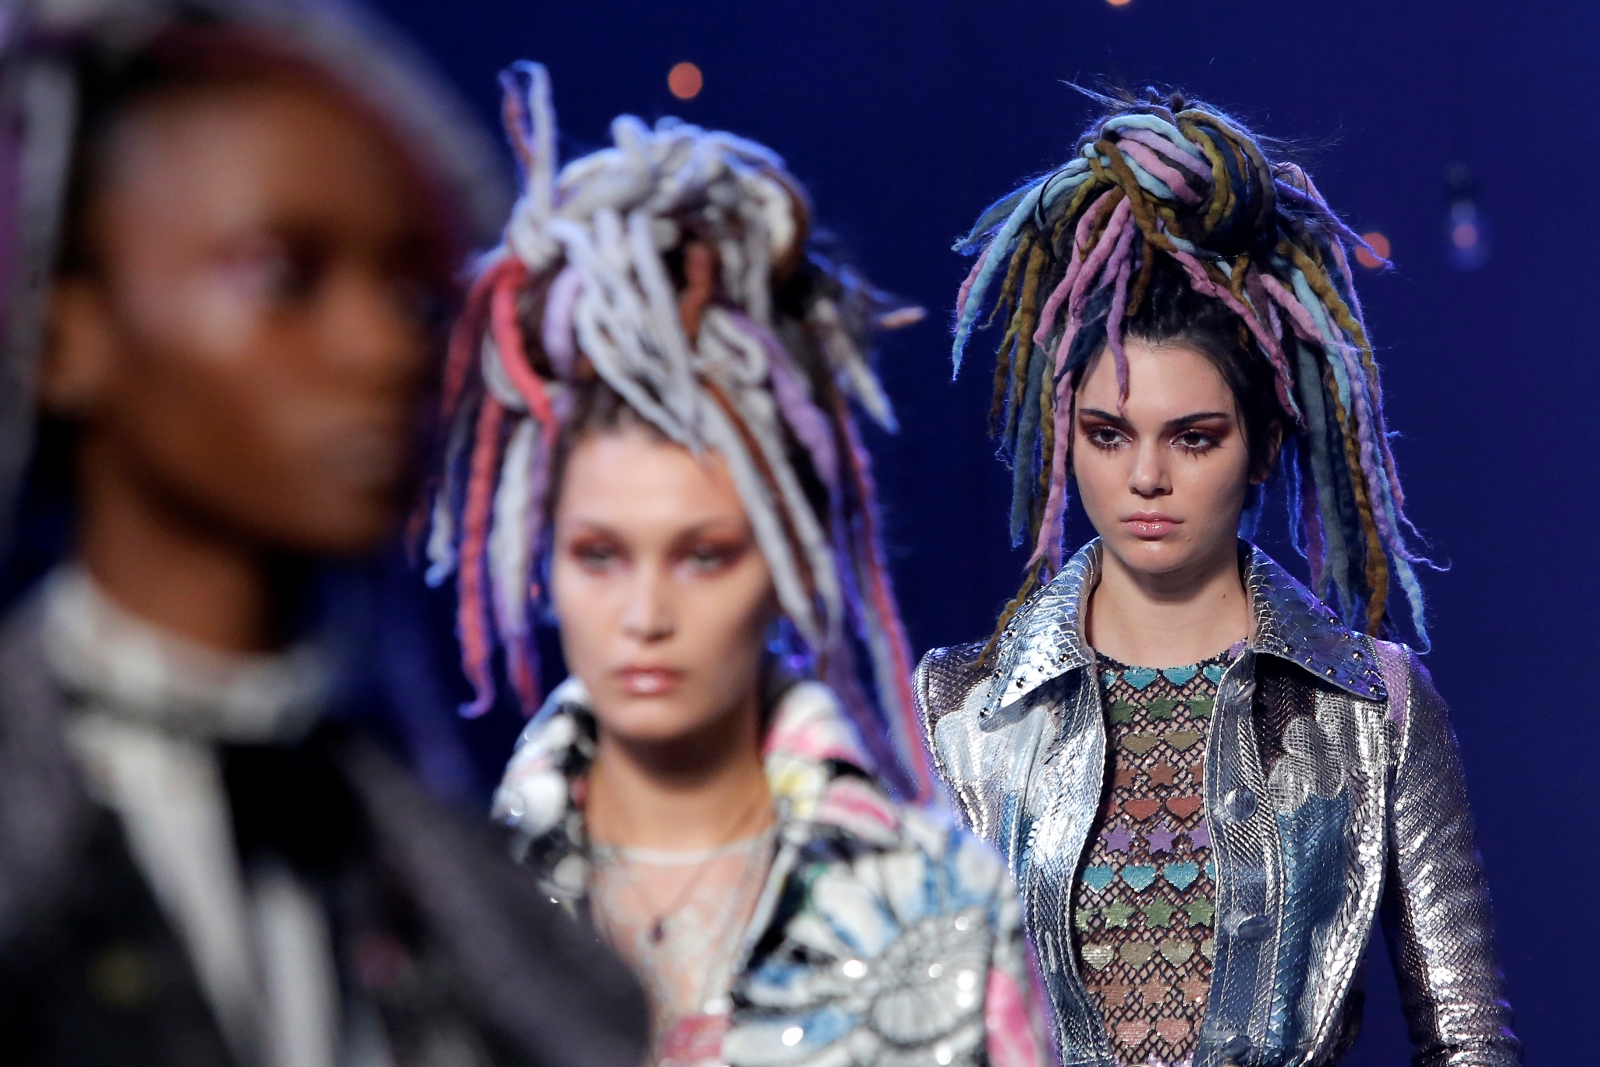 Marc Jacobs' Cultural Appropriation Isn't Worth Getting Mad About